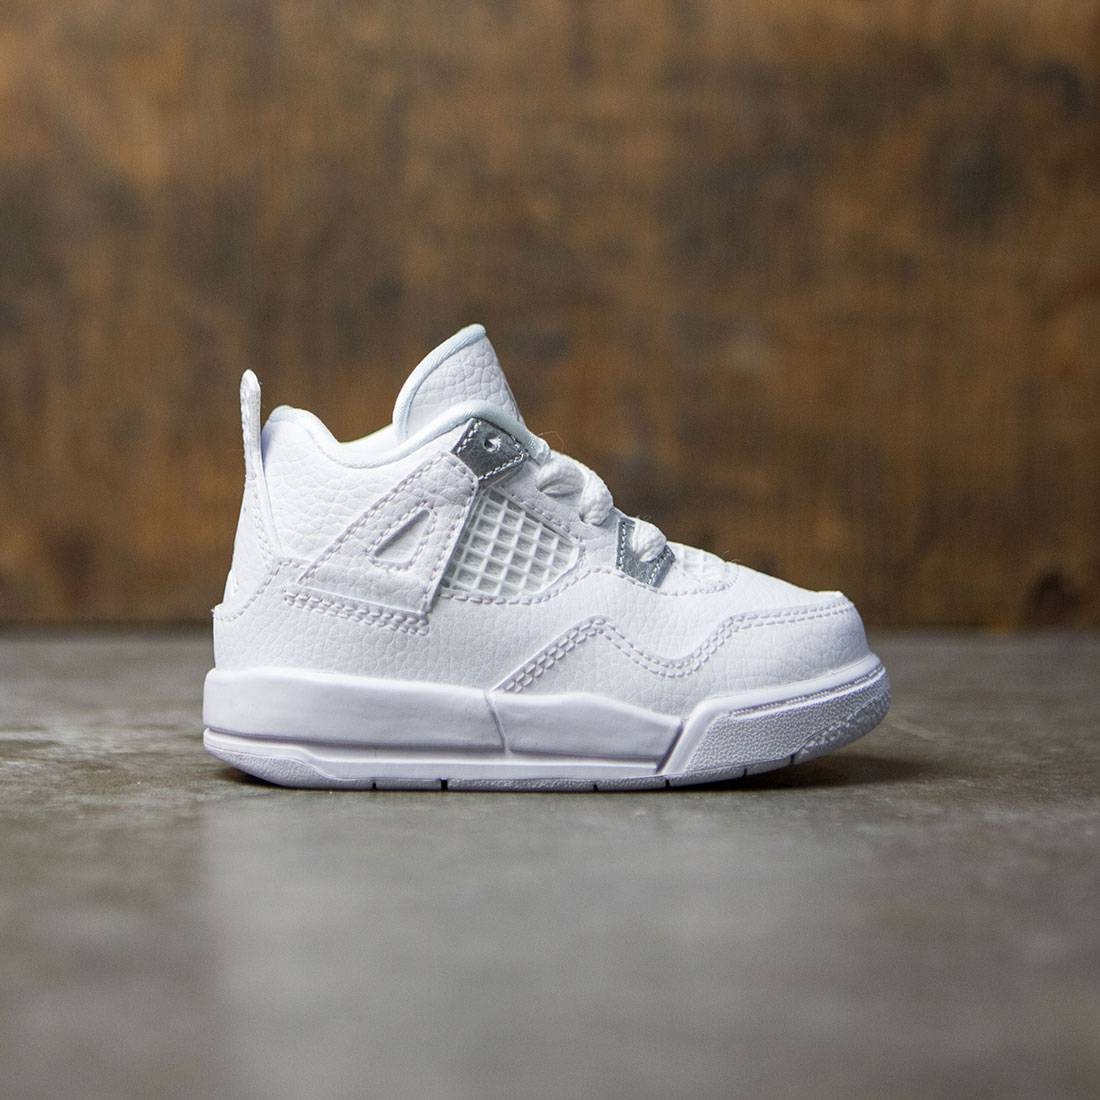 promo code bfa21 c674e Air Jordan IV Retro (TD) Toddlers (white / metallic silver-pure platinum)